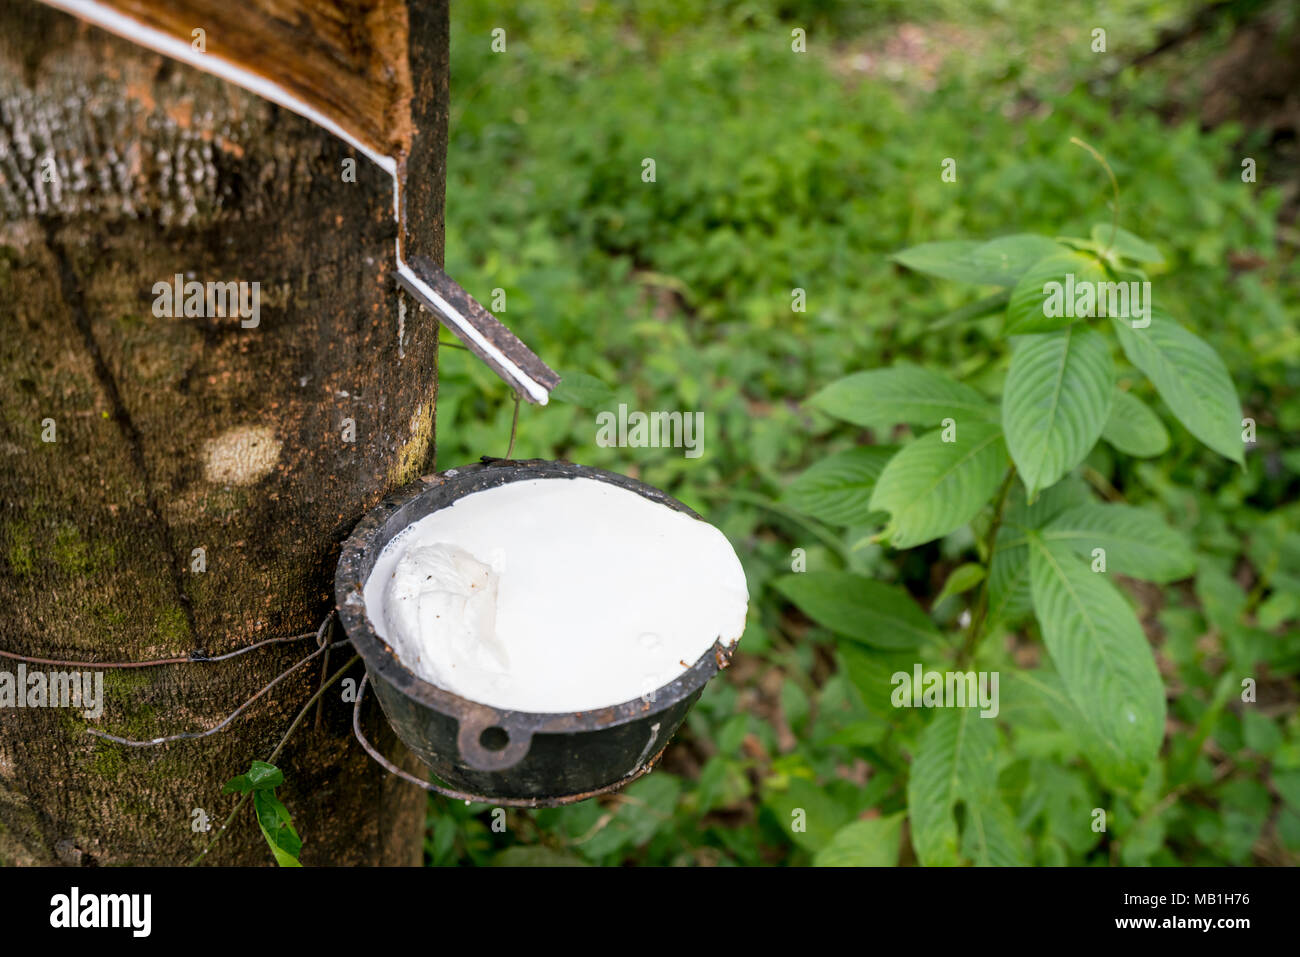 Close-up of rubber tapping and the lush undergrowth in the background - Stock Image